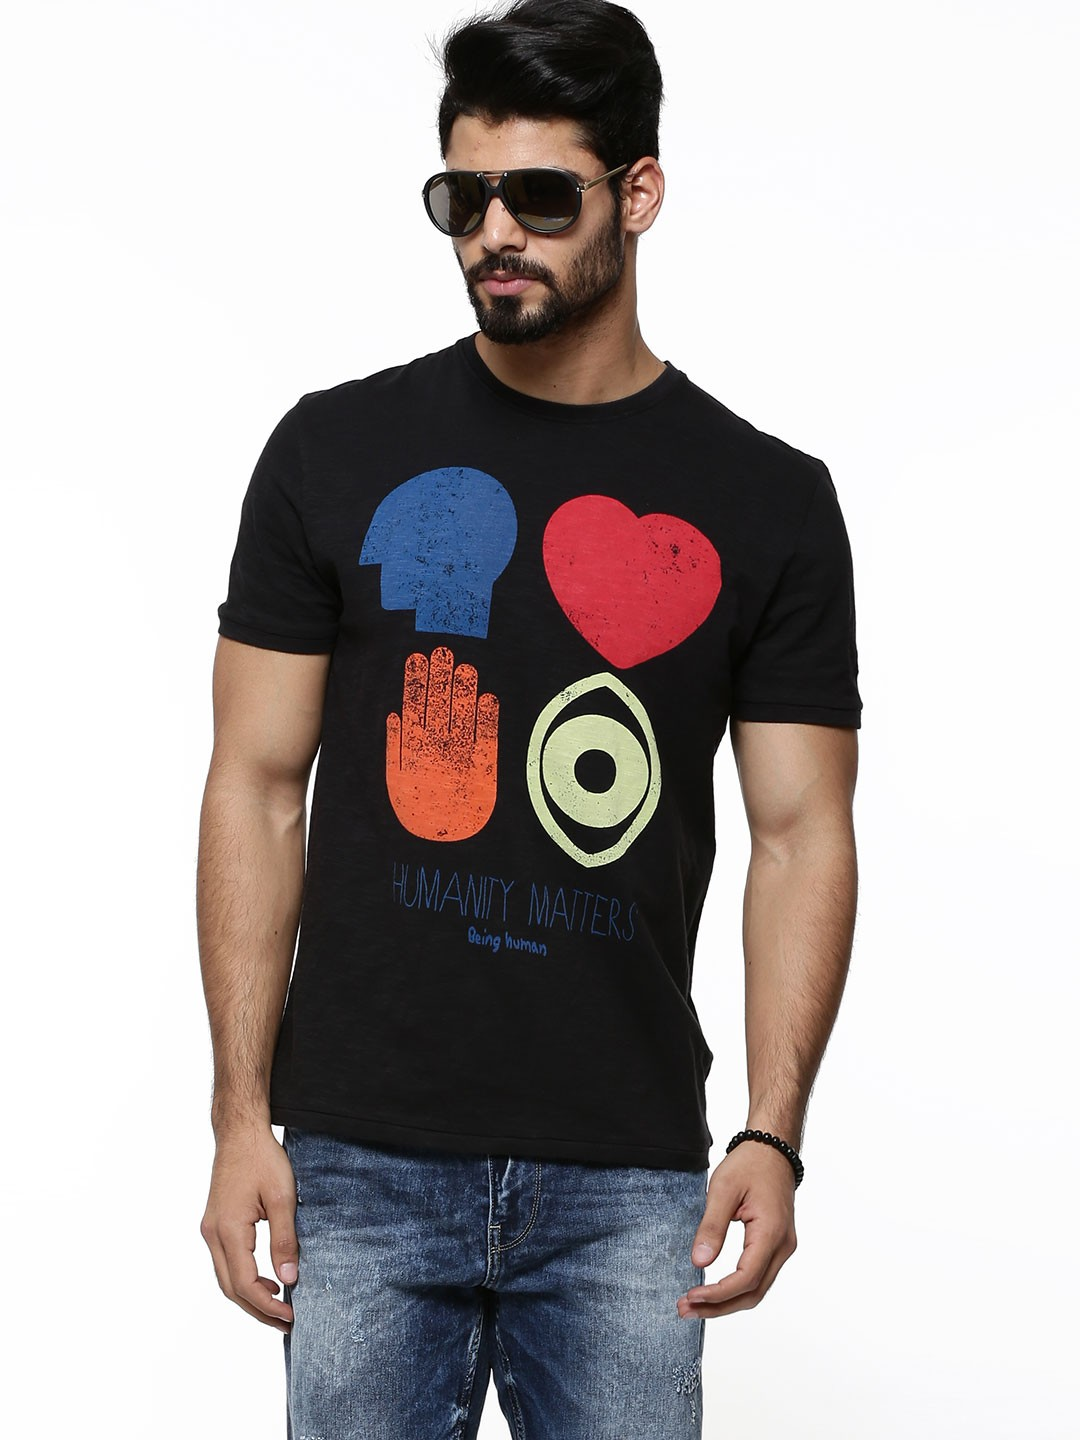 Buy being human 39 humanity matters 39 t shirt for men men 39 s for Being human t shirts buy online india